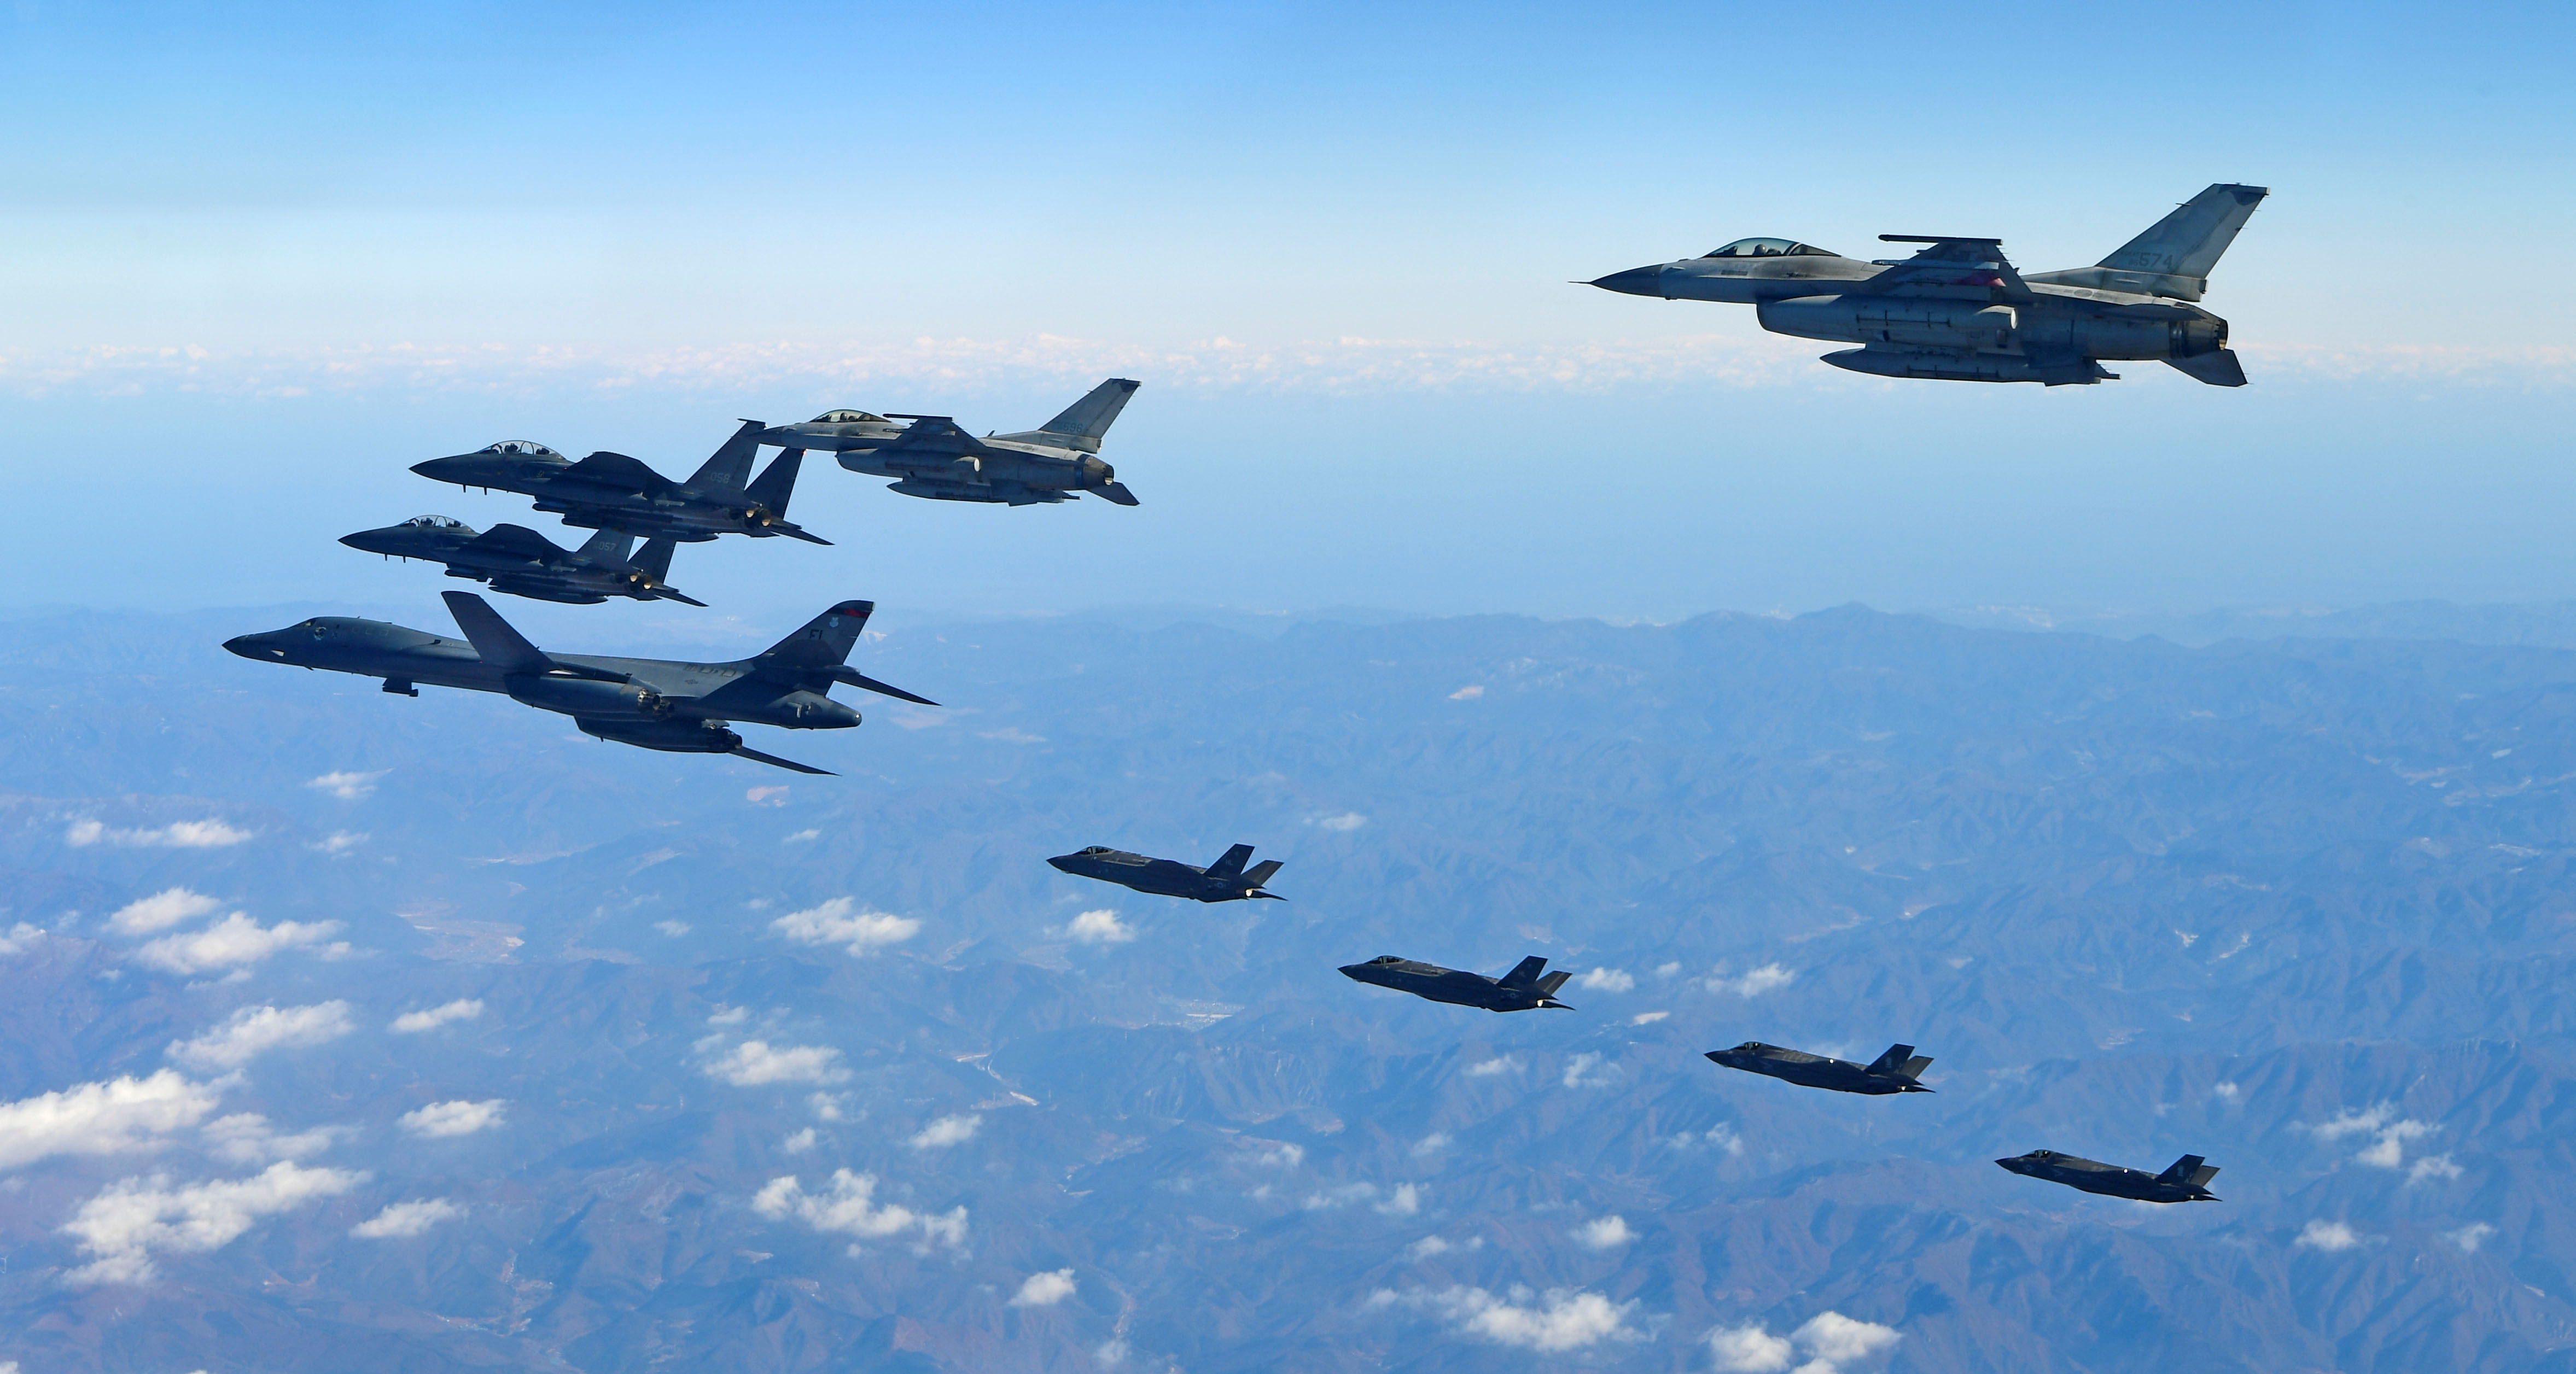 U.S. Air Force B-1B bomber flies in formation during a joint aerial drill called 'Vigilant Ace' between U.S and South Korea, South Korea December 6, 2017.